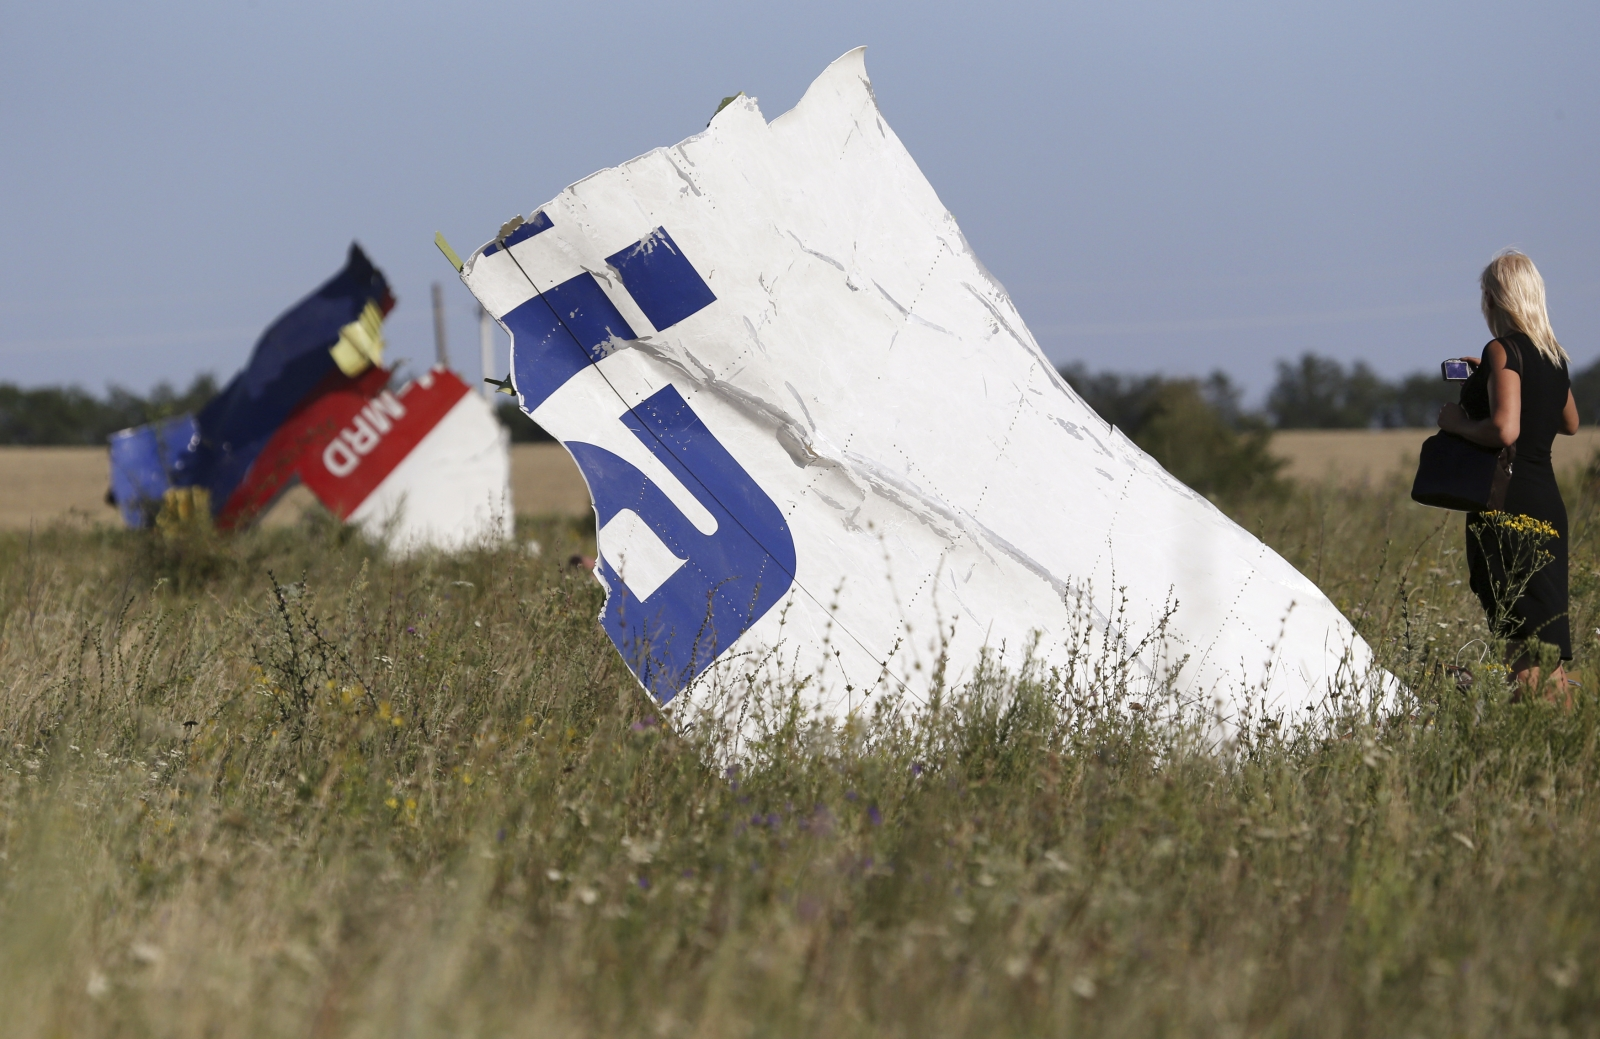 MH17 air disaster